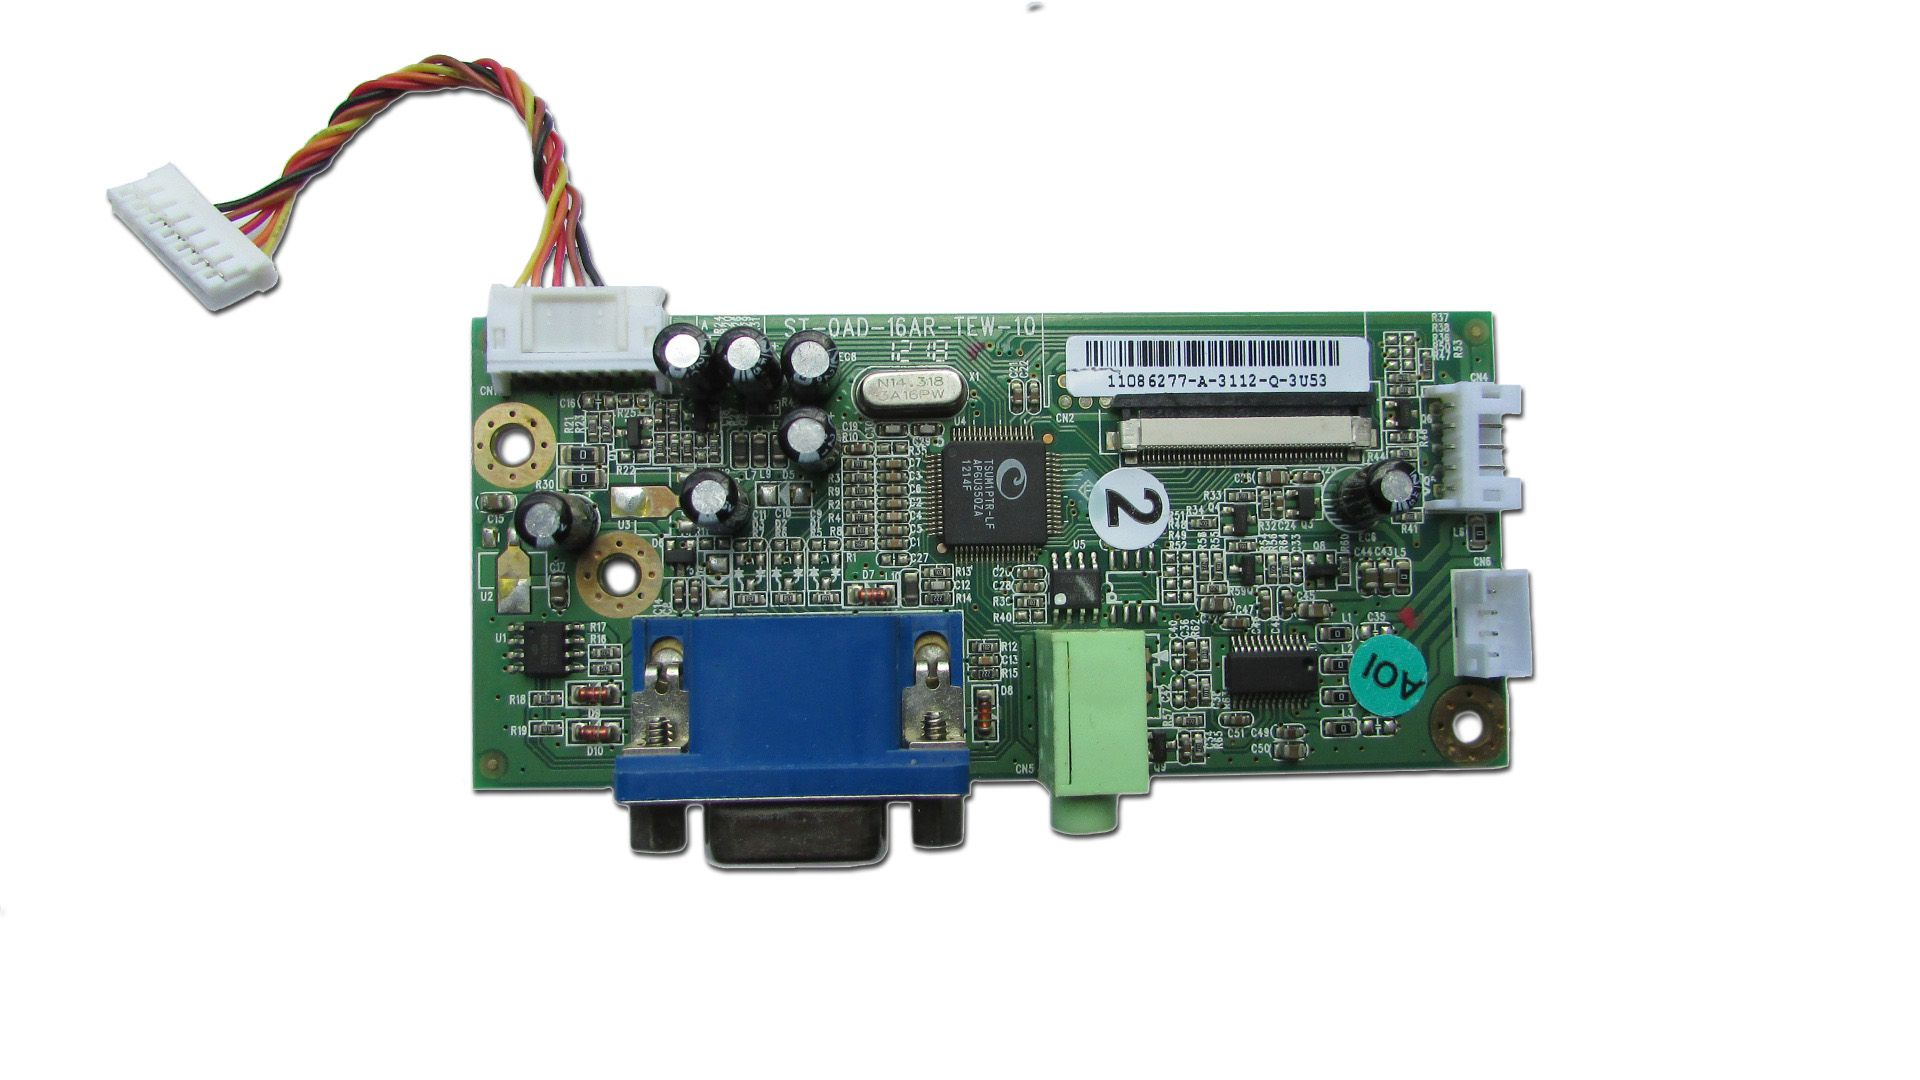 Placa St-oad-16ar-tew-10 VGA Monitor positivo Smile 5611